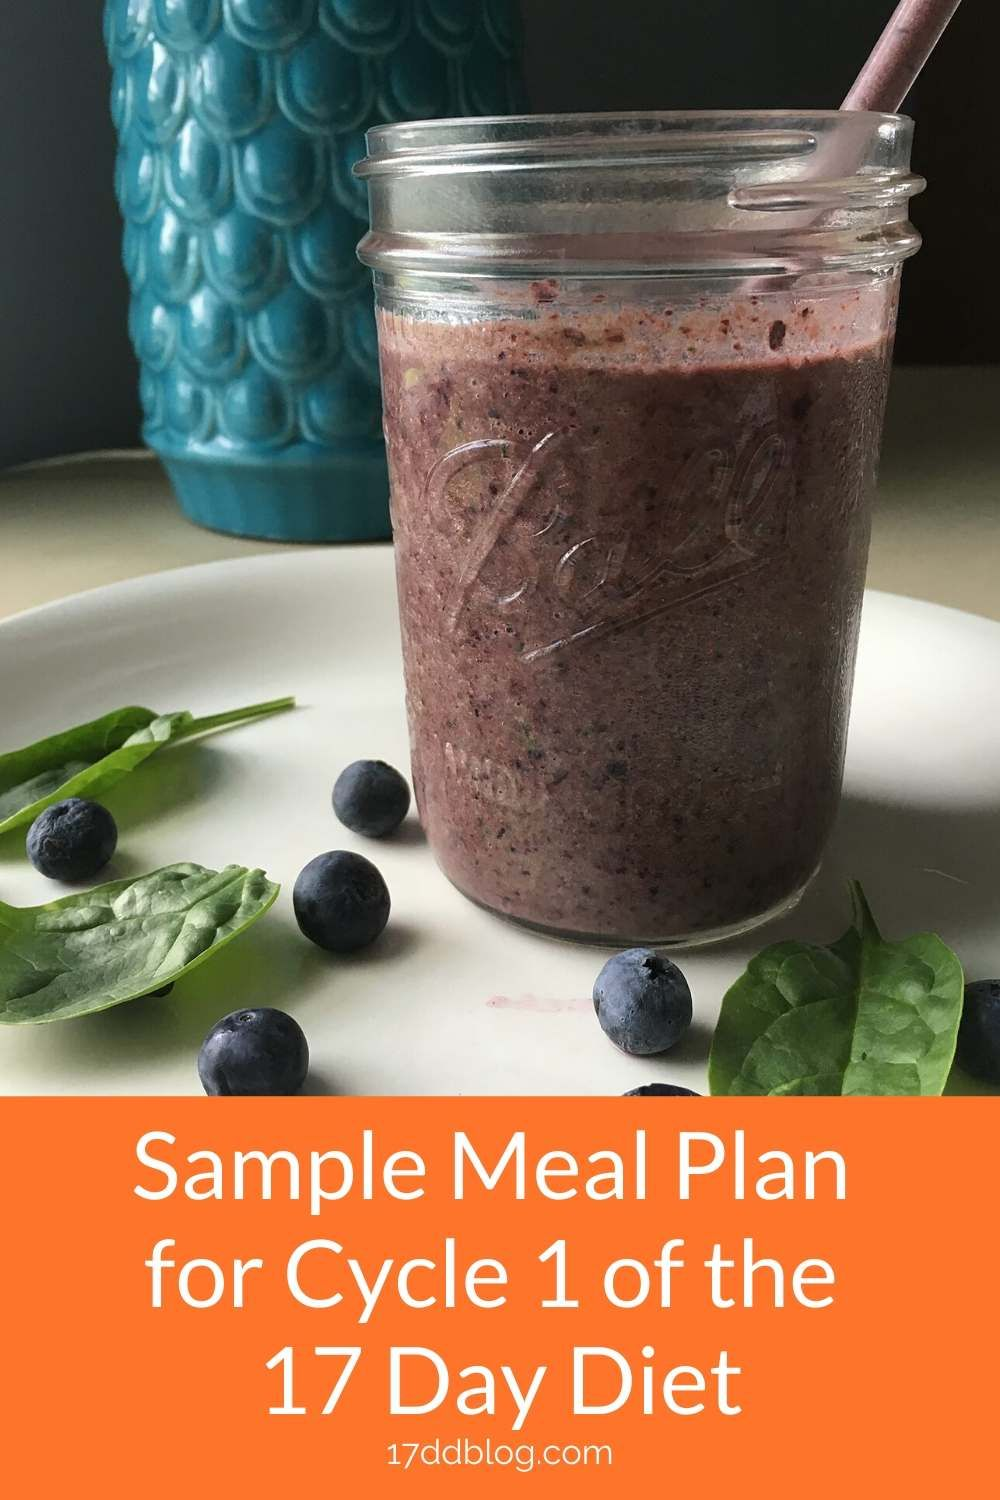 Get cycle 1 recipe ideas for breakfast lunch and dinner